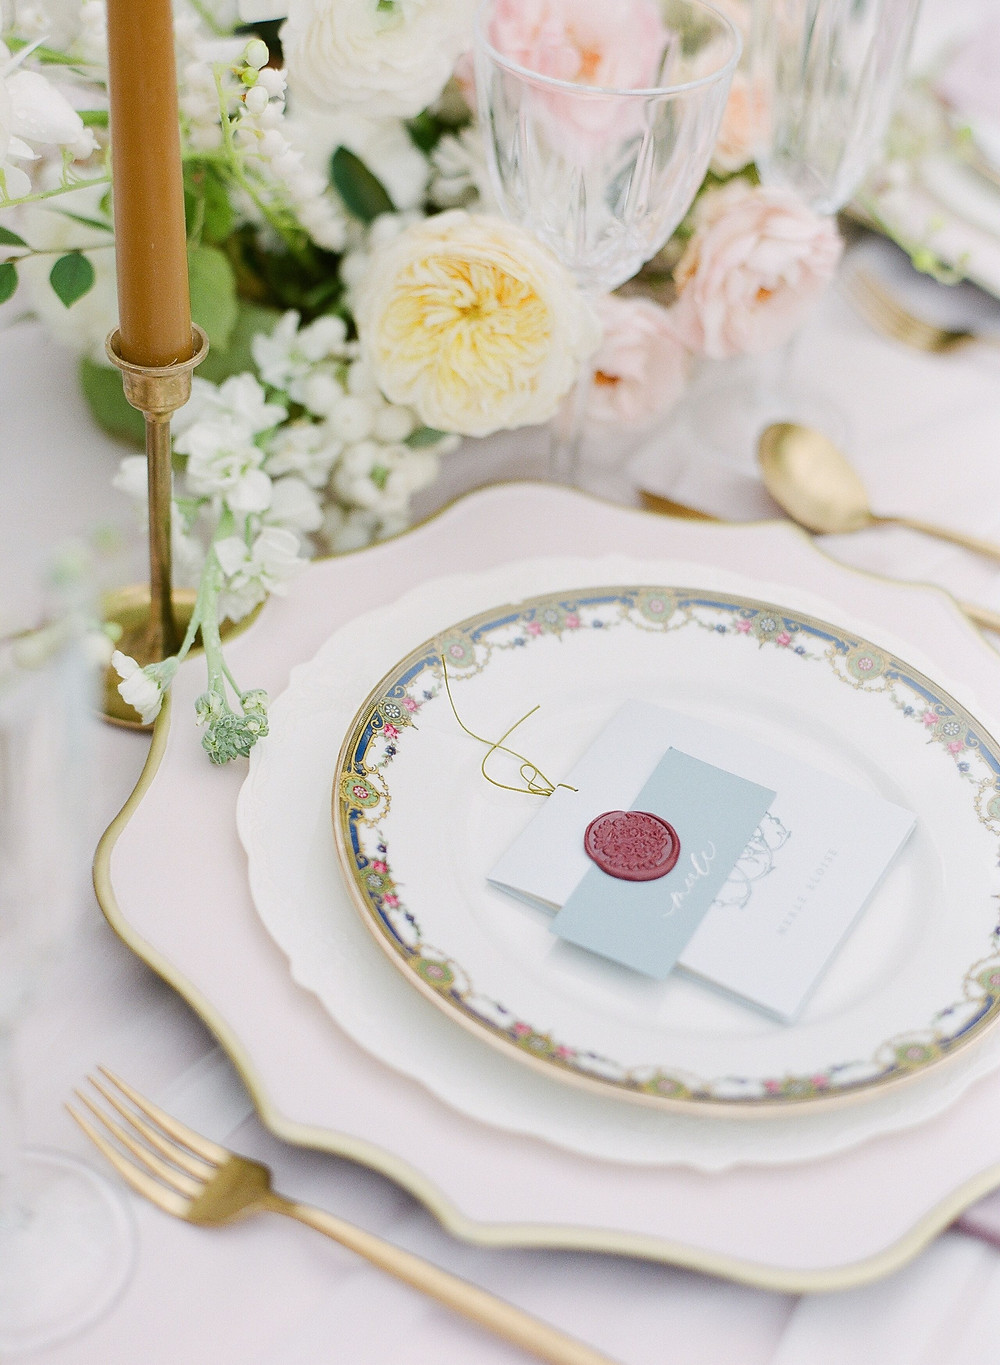 Layered china, detailed stationery with wax seal